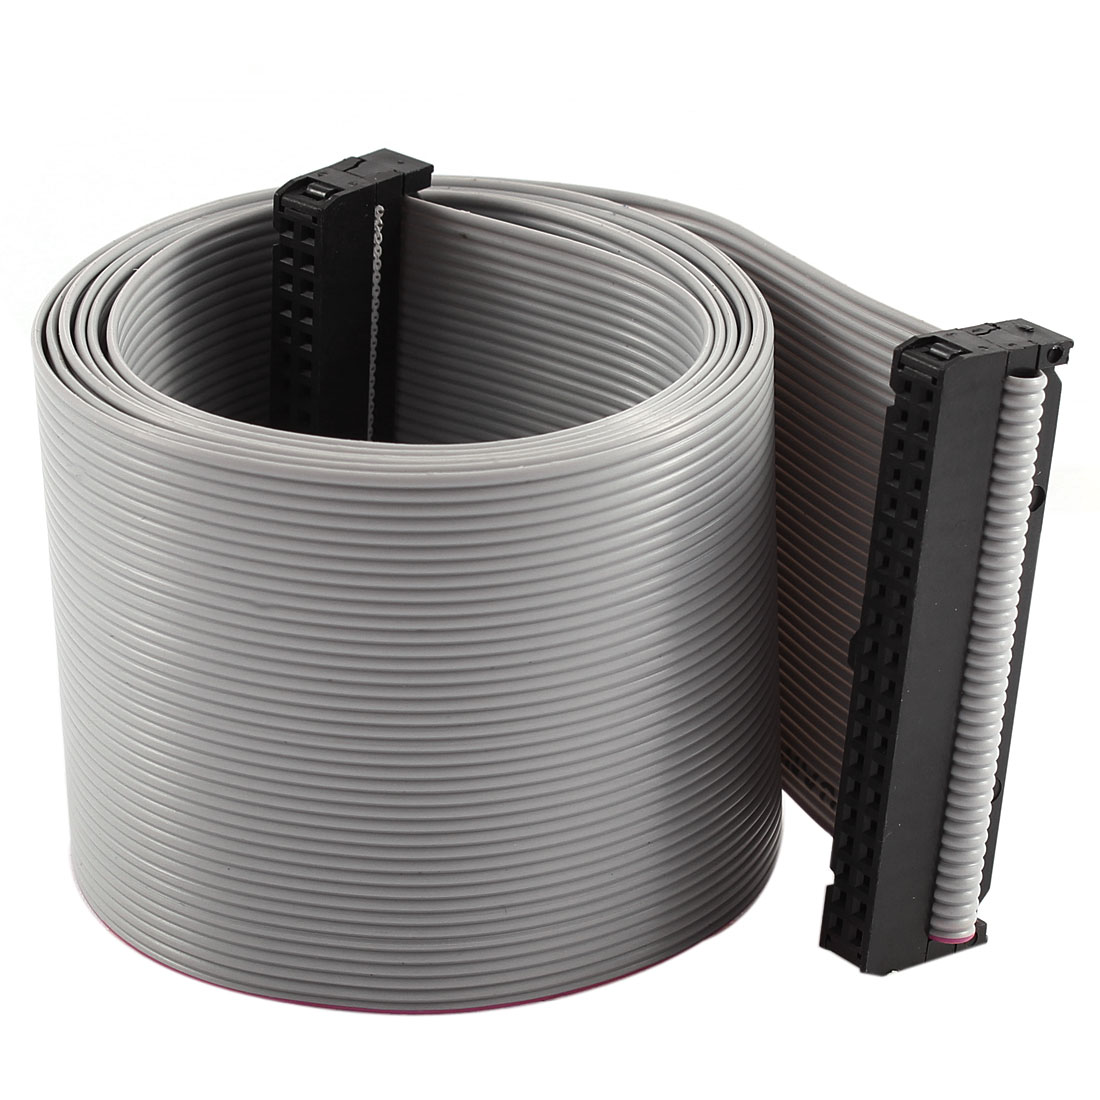 2.54mm Pitch 2x40P 40 Pin 40 Wire Female to Female IDC Flat Ribbon Cable 118cm